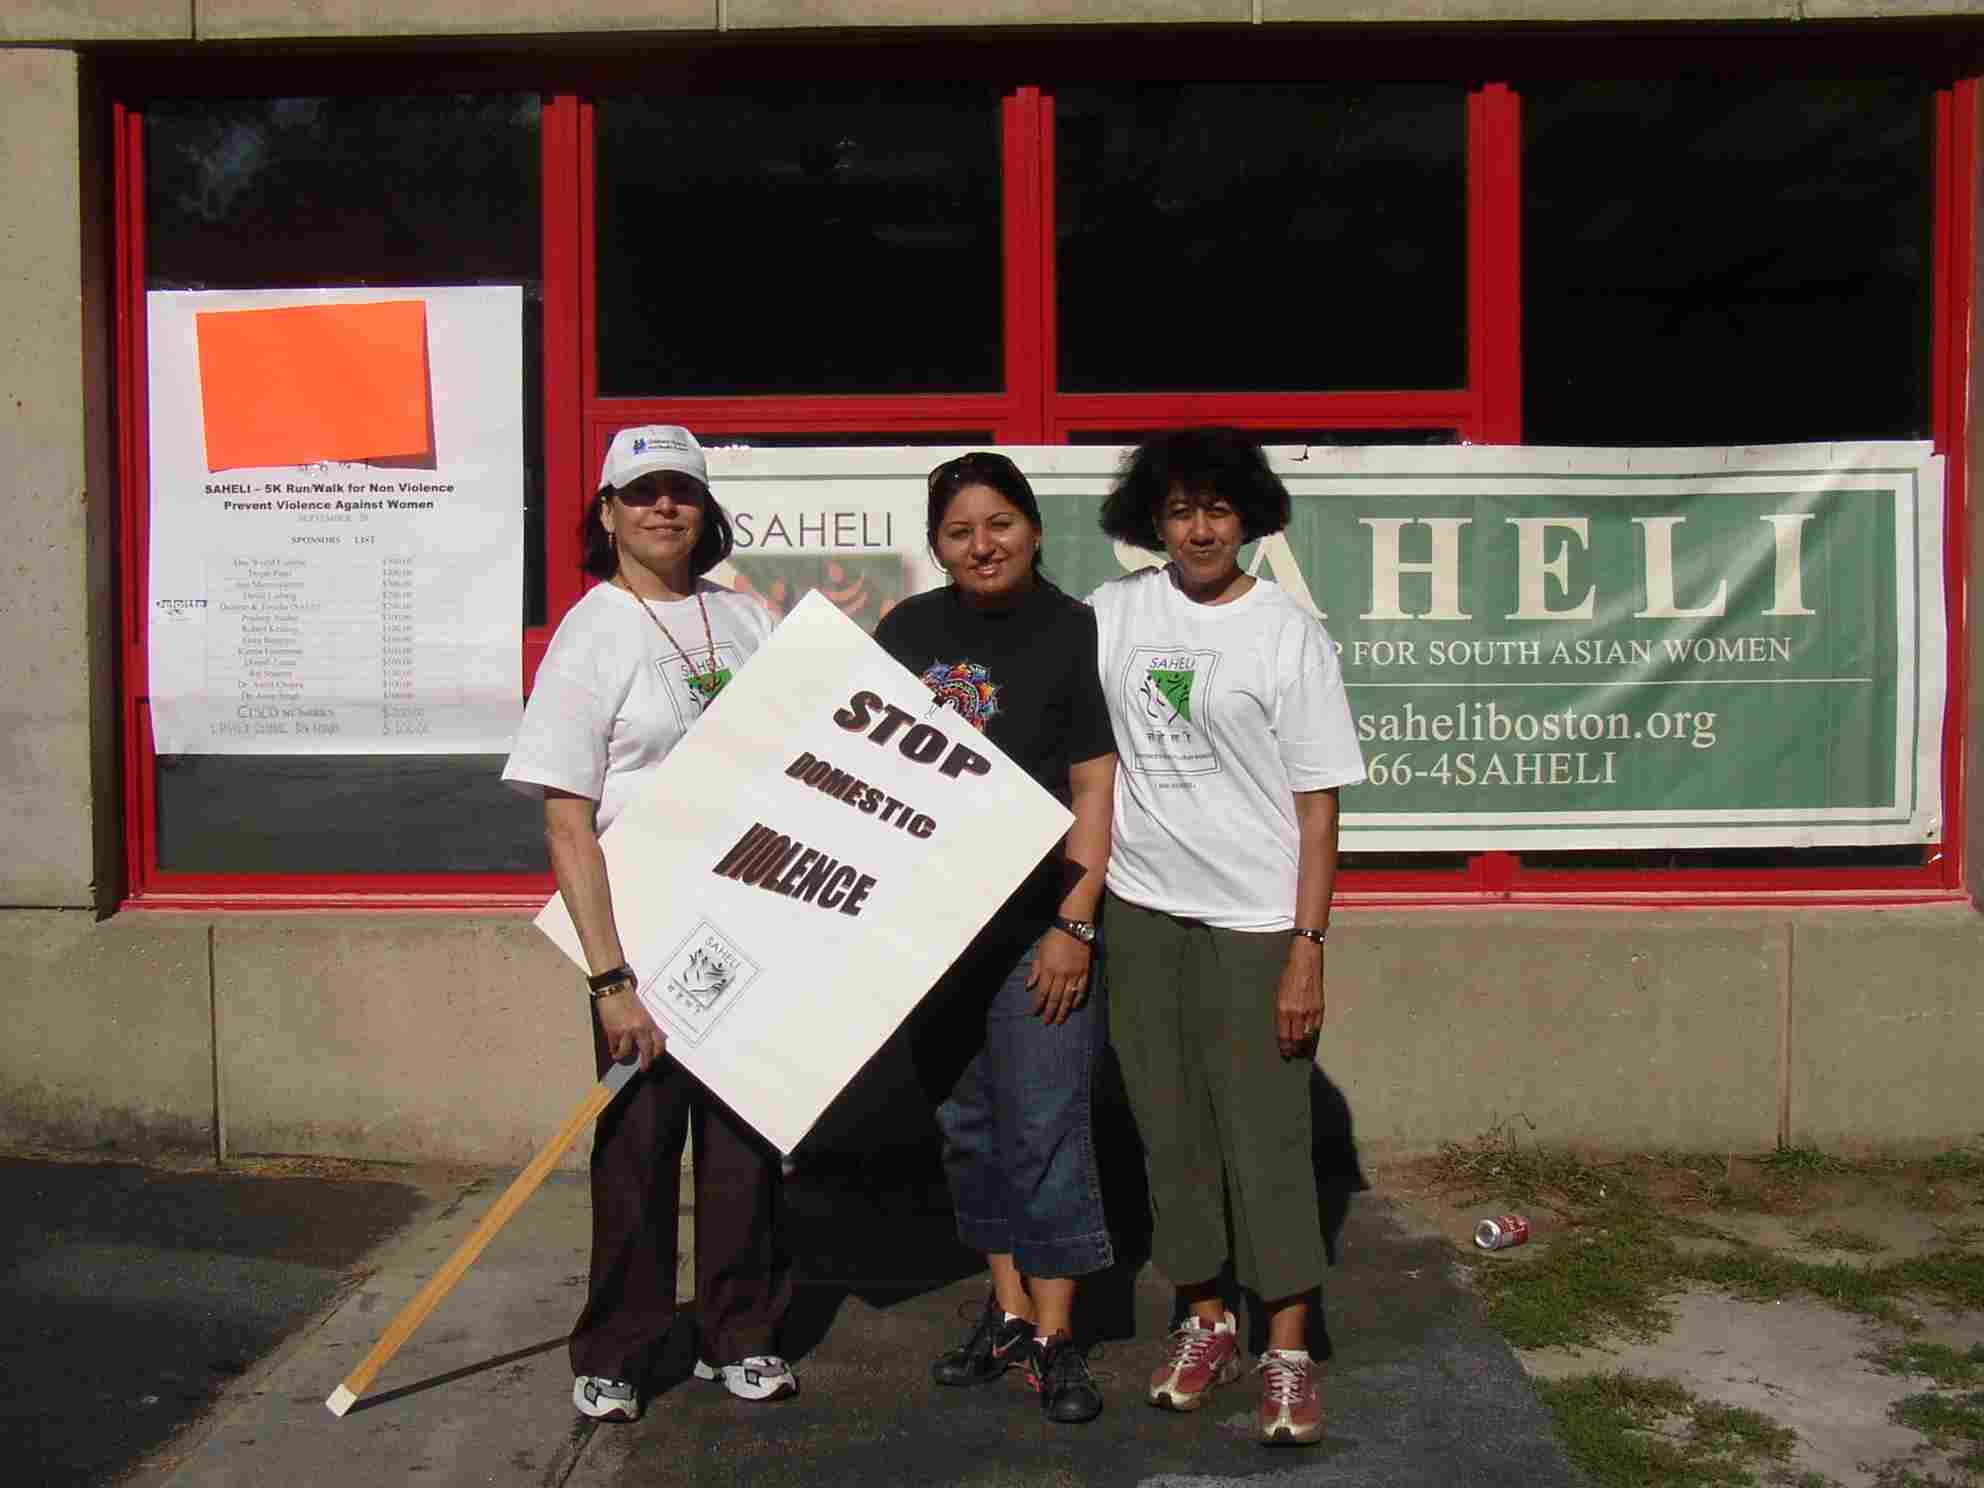 Saheli Walk Raises Awareness For Non Violence Against Women